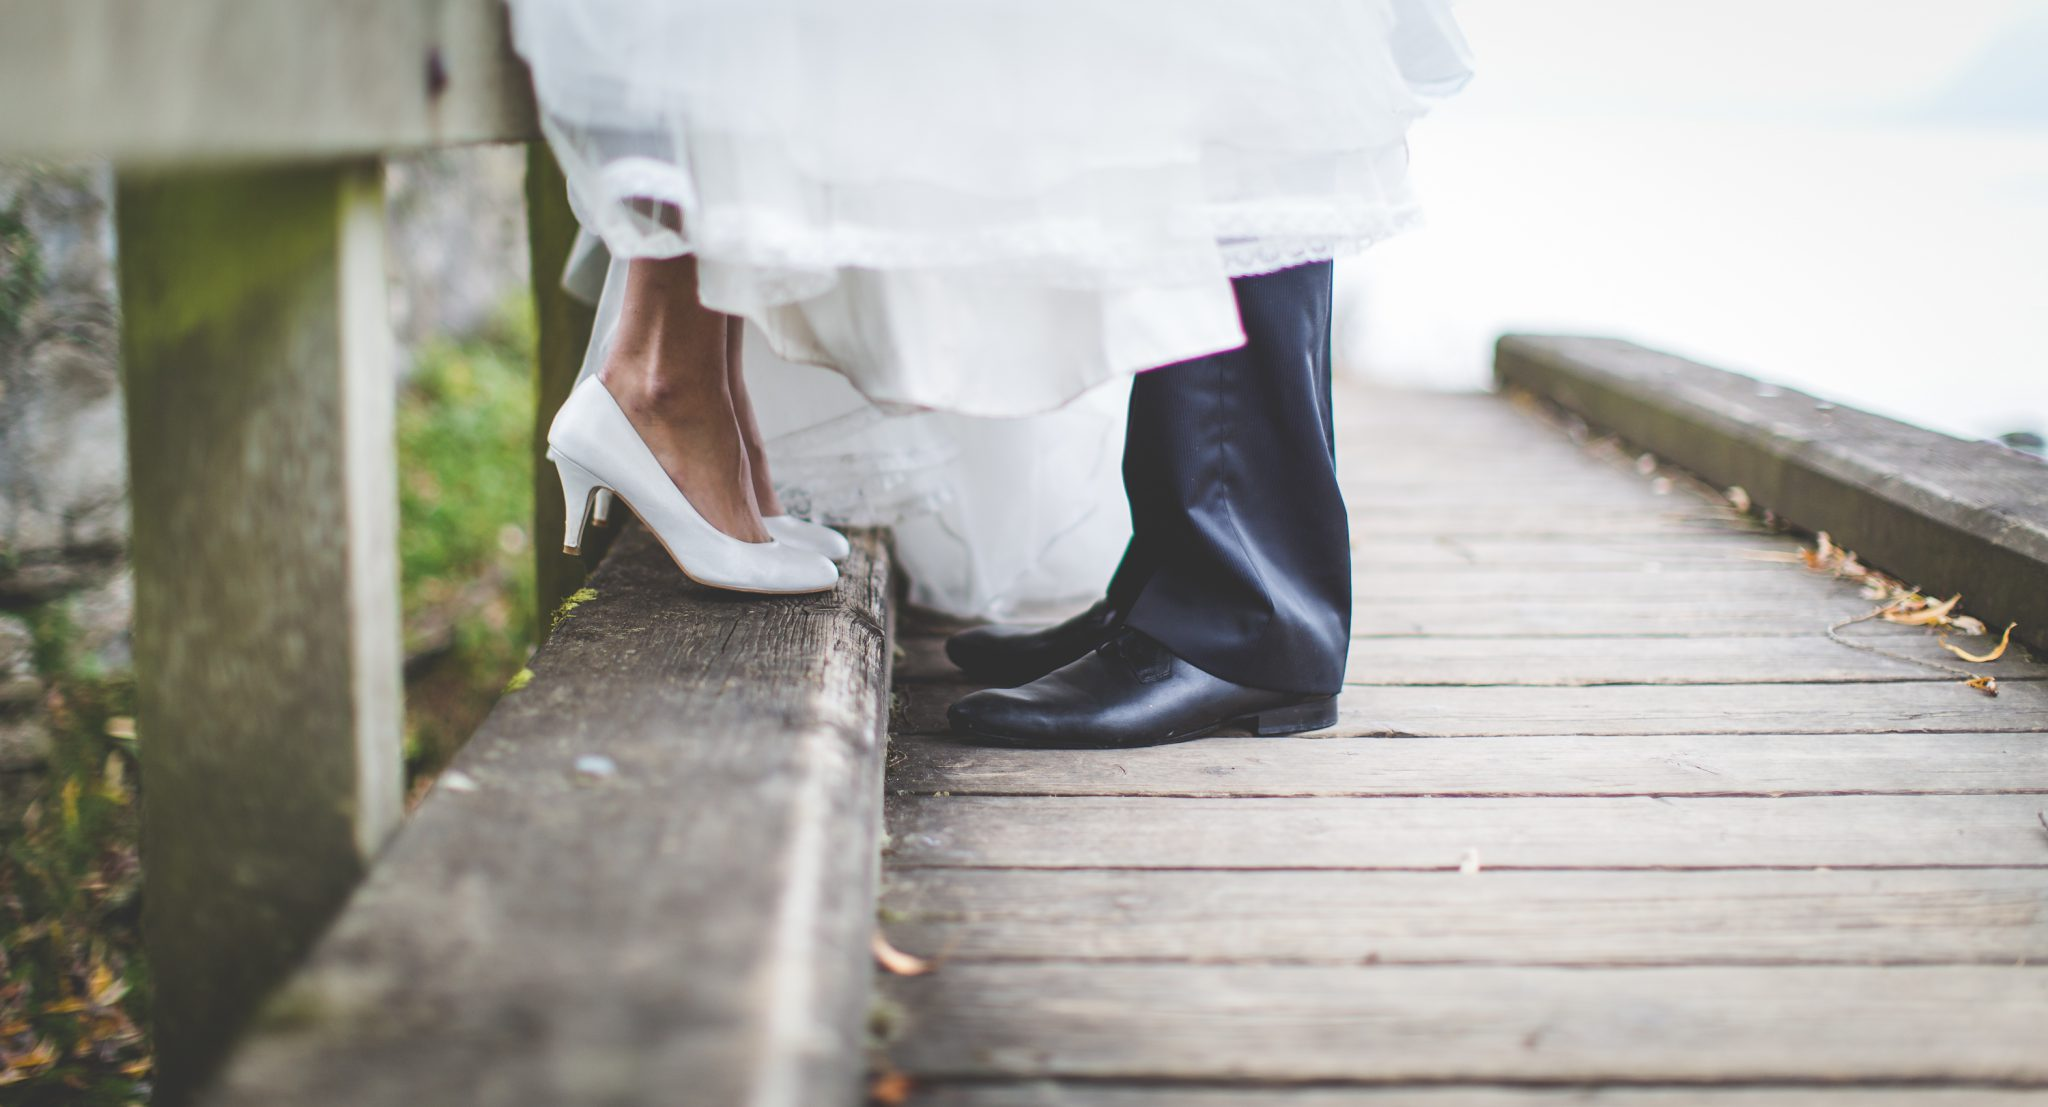 Weddings – Feet